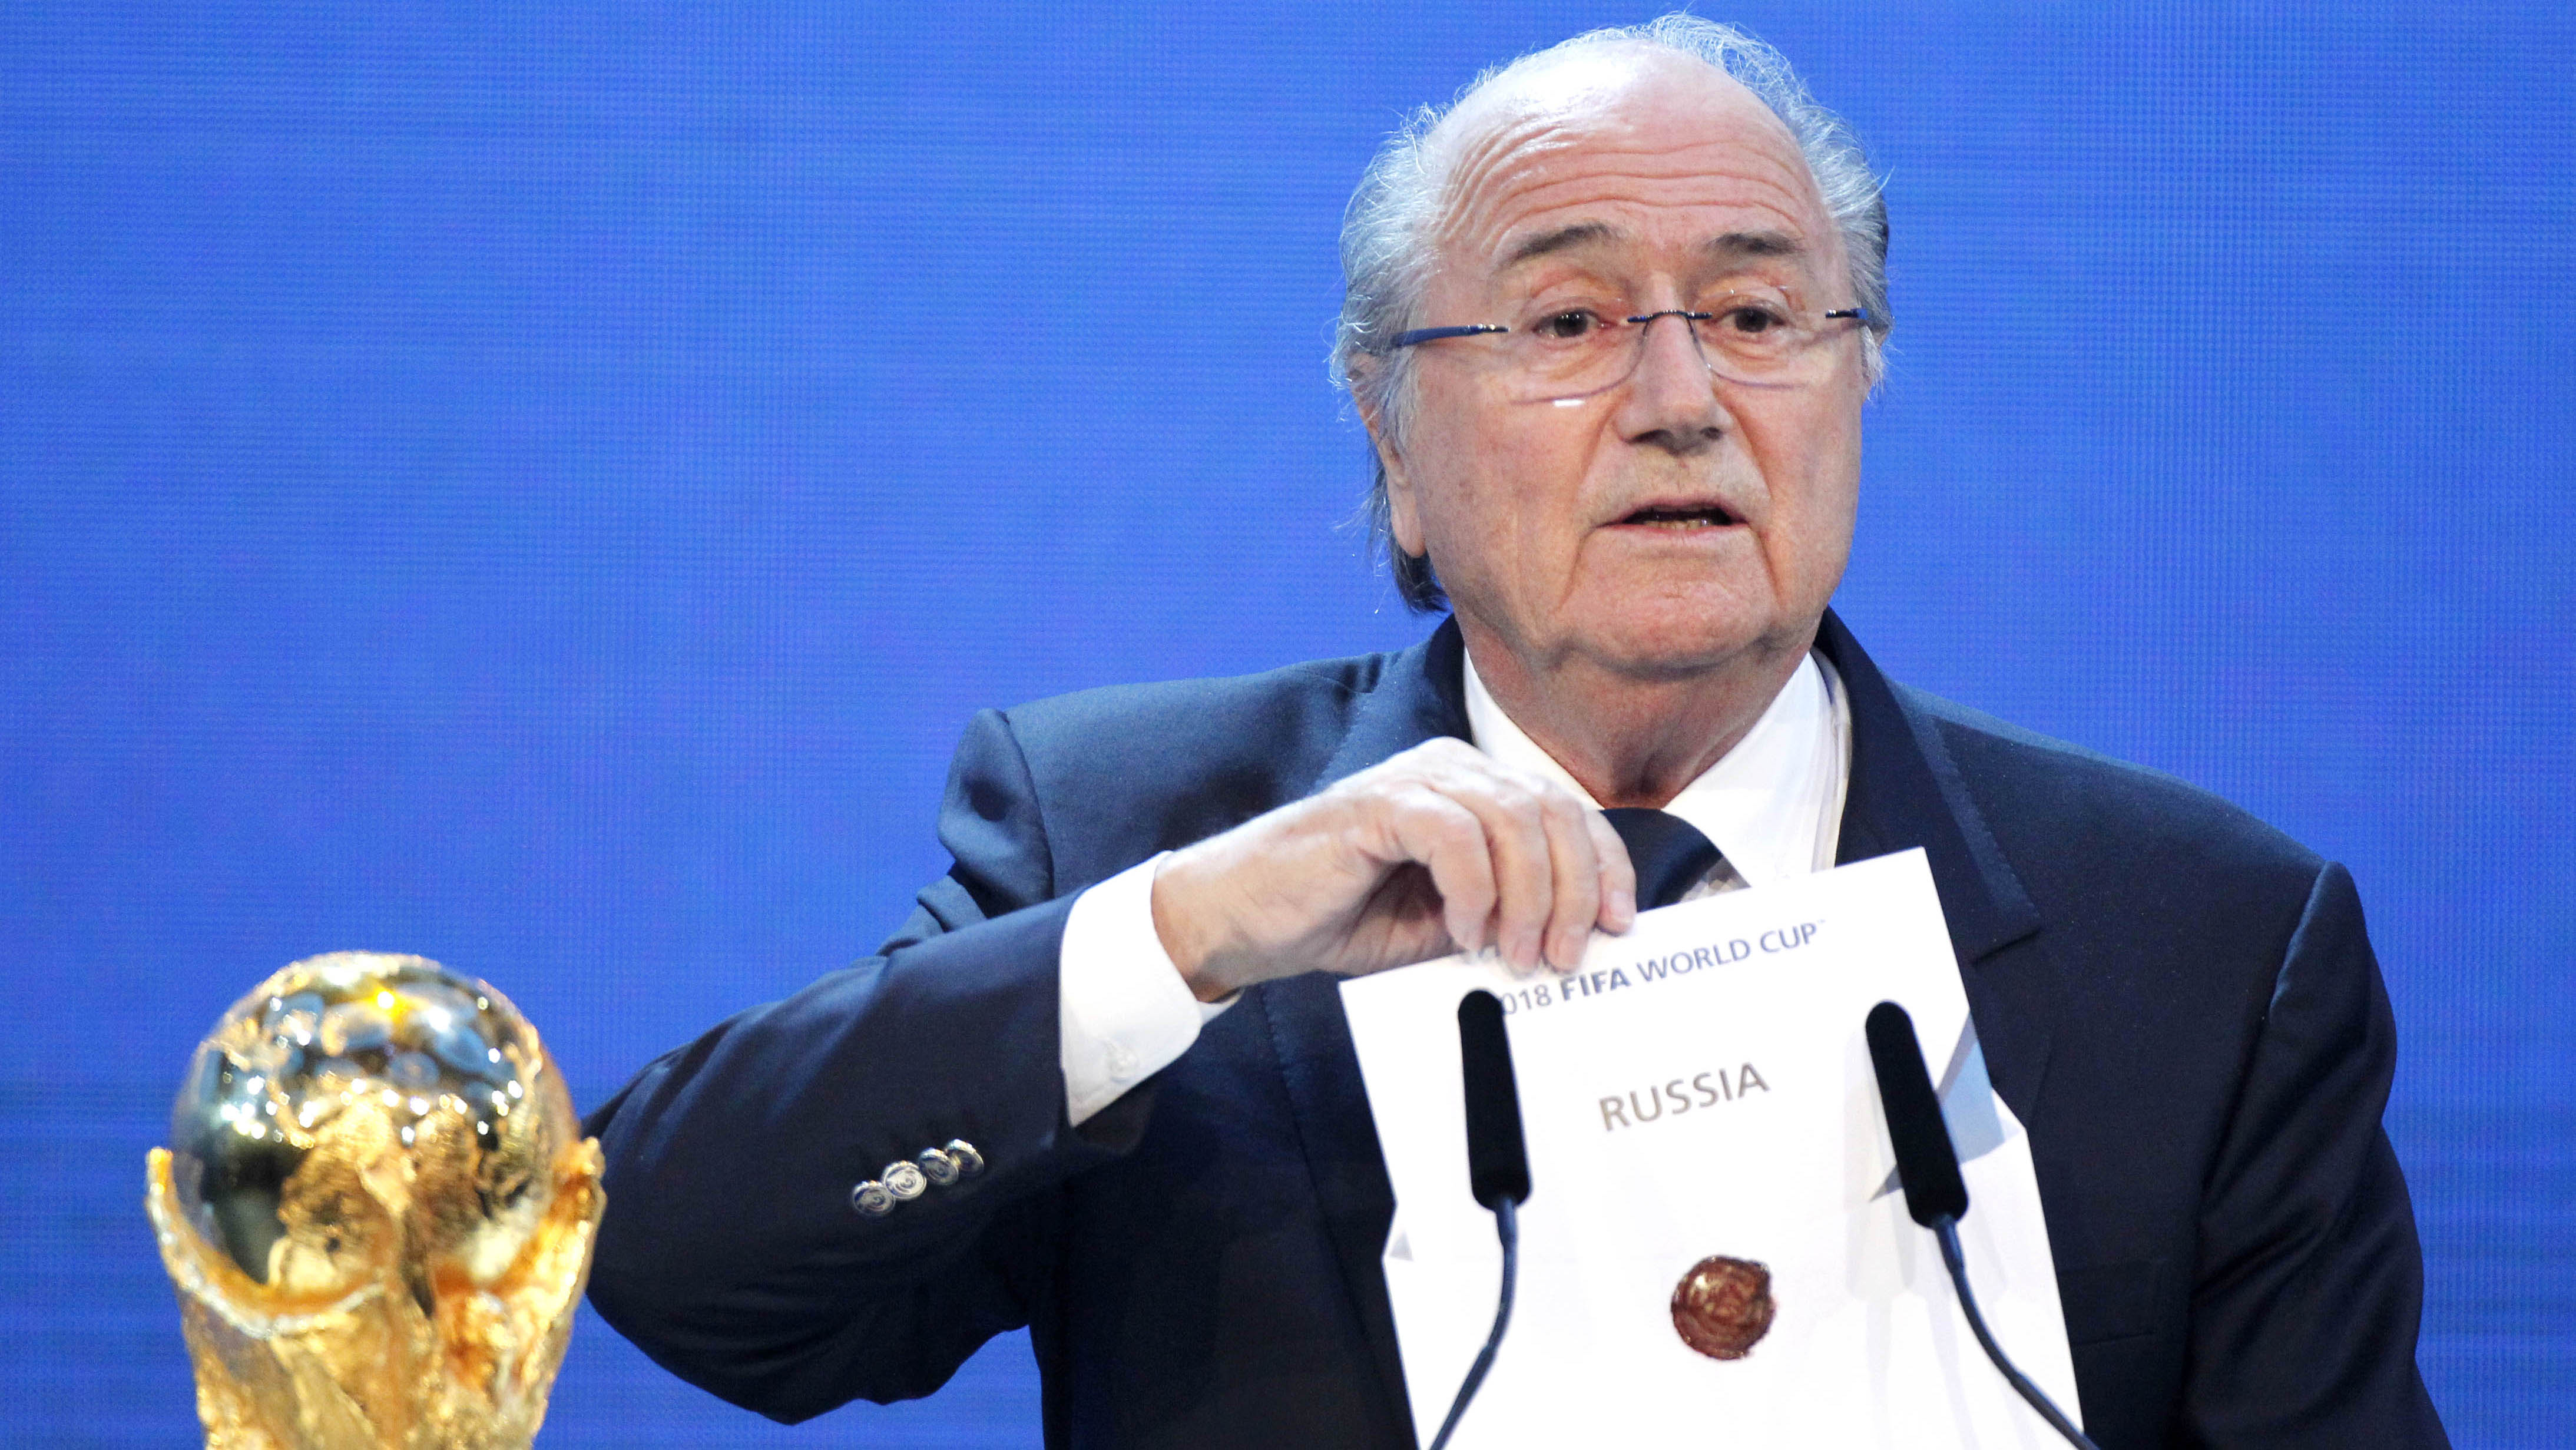 Sepp Blatter Claims Russia Was Given World Cup Before Vote UNILAD sepp wc russia21994